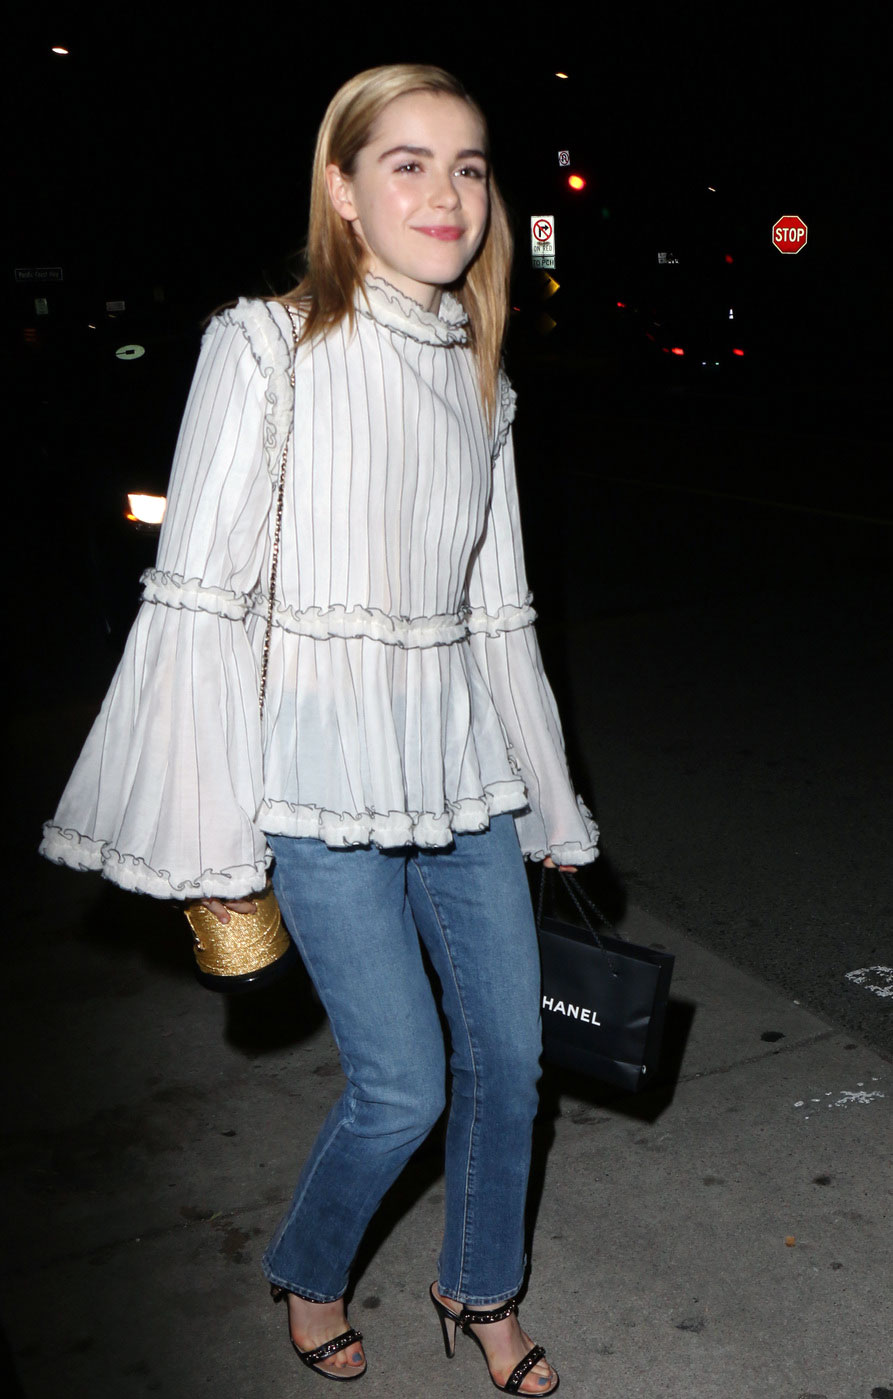 Kiernan Shipka's bell sleeve blouse and jeans look for less